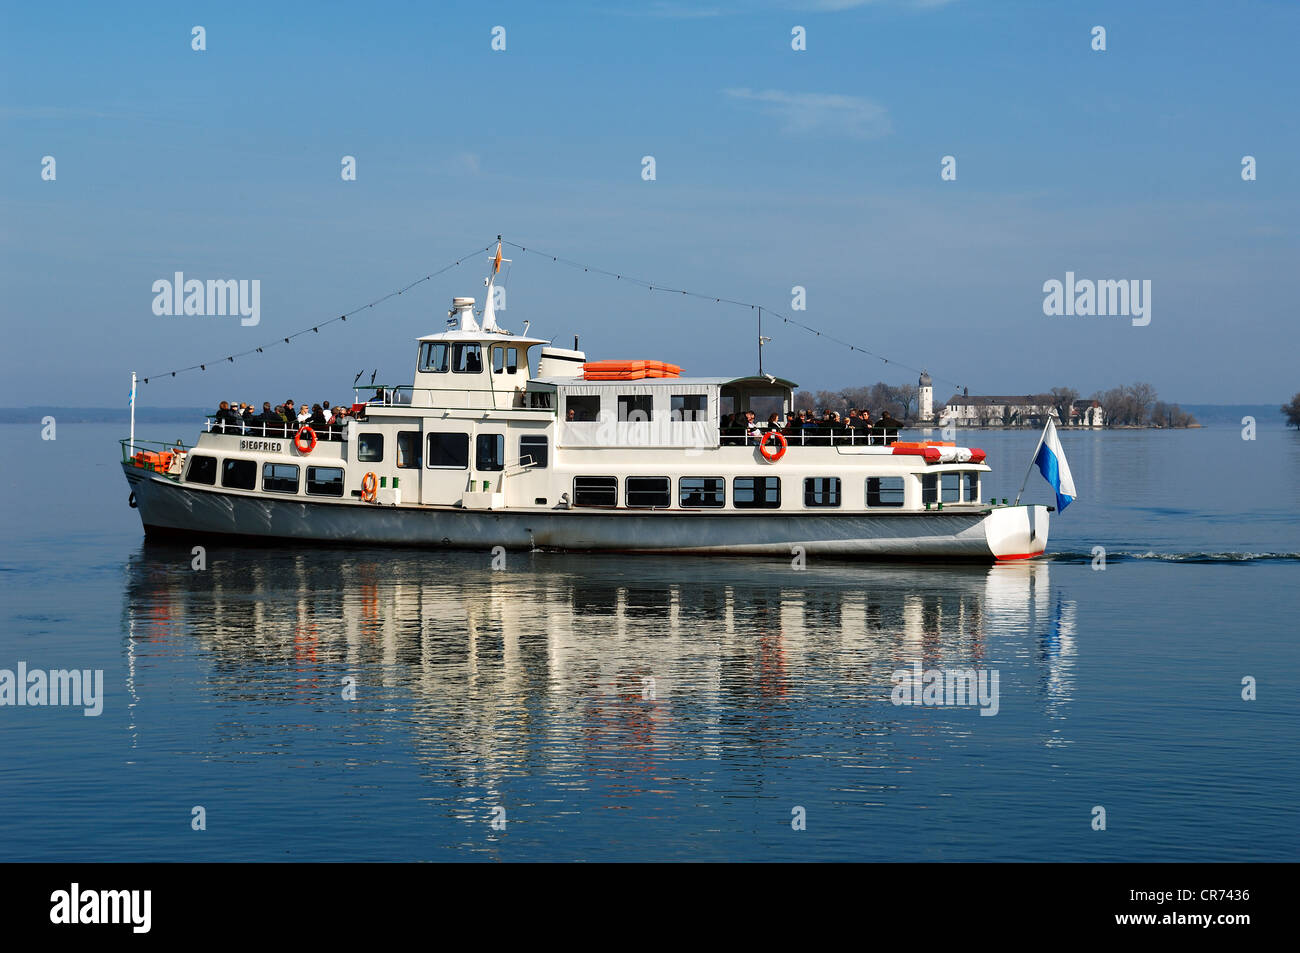 Ferry on Lake Chiemsee, Frauenchiemsee island, also know as Fraueninsel island at the back, Chiemsee, Upper Bavaria Stock Photo